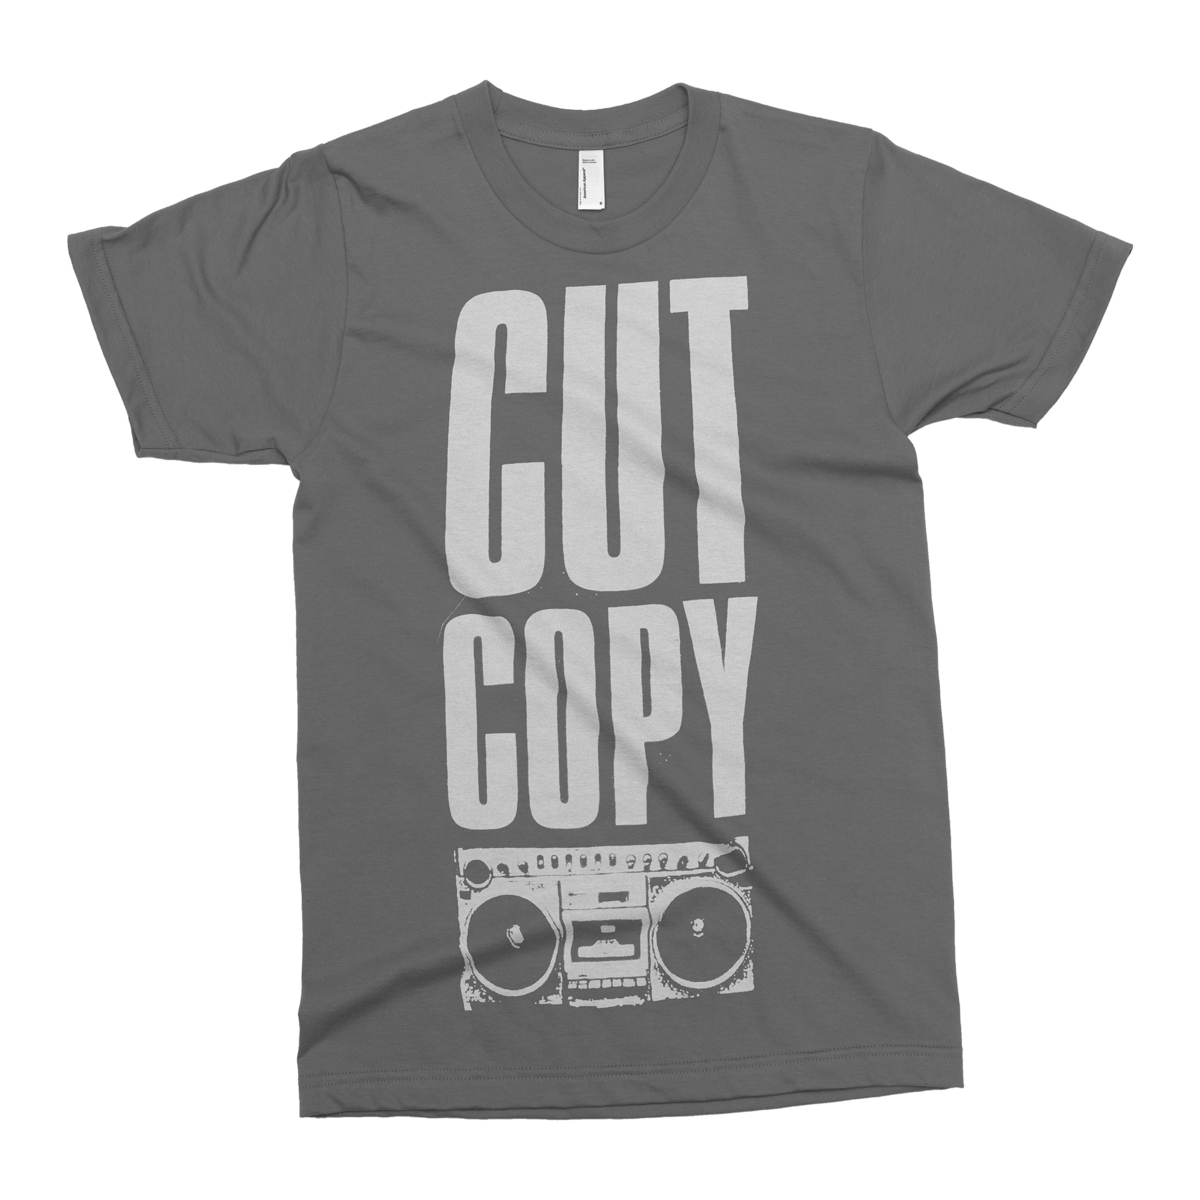 Cut Copy Boom Box T-Shirt - Gray